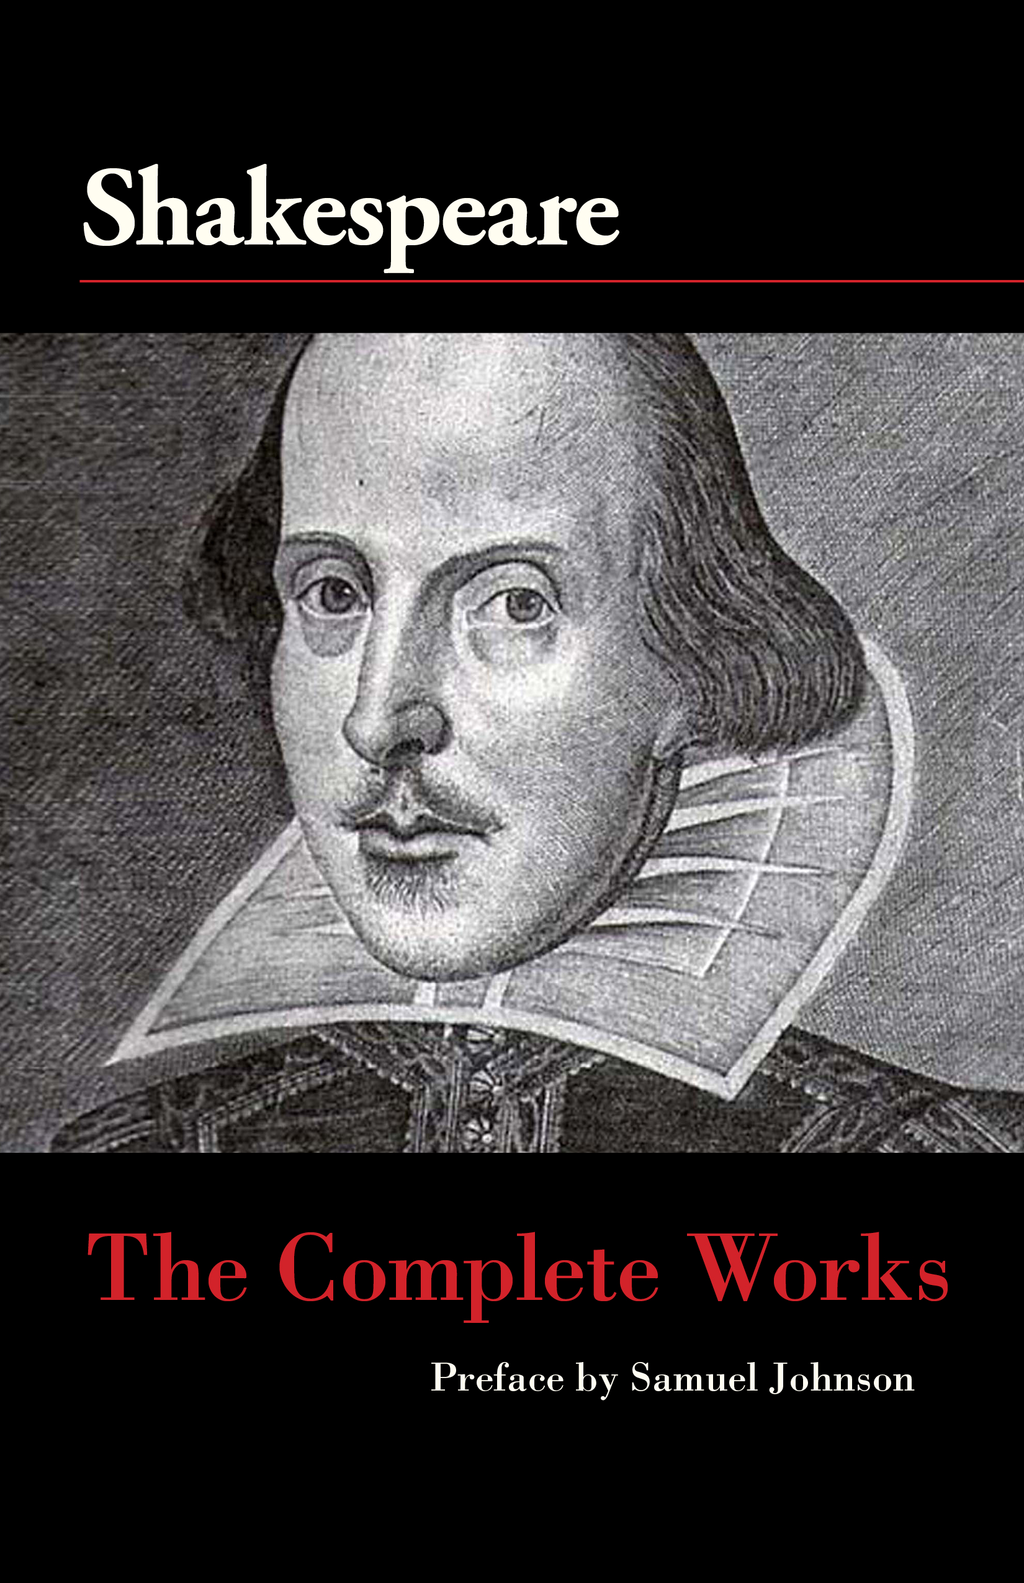 The Complete Works of William Shakespeare By: Samuel Johnson,William Shakespeare